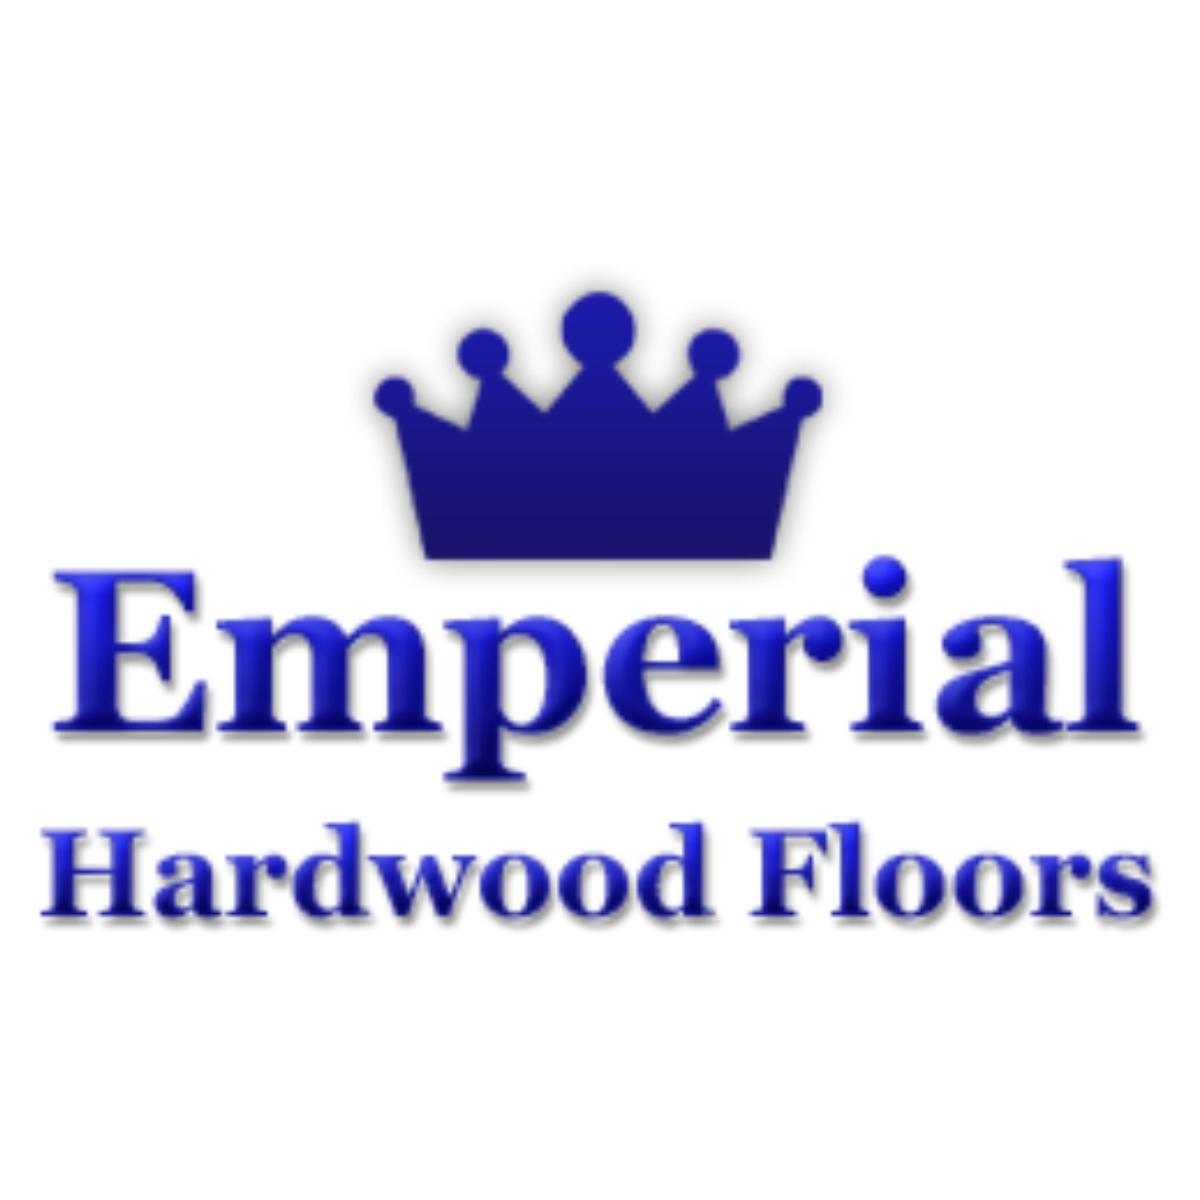 Emperial Hardwood Floors